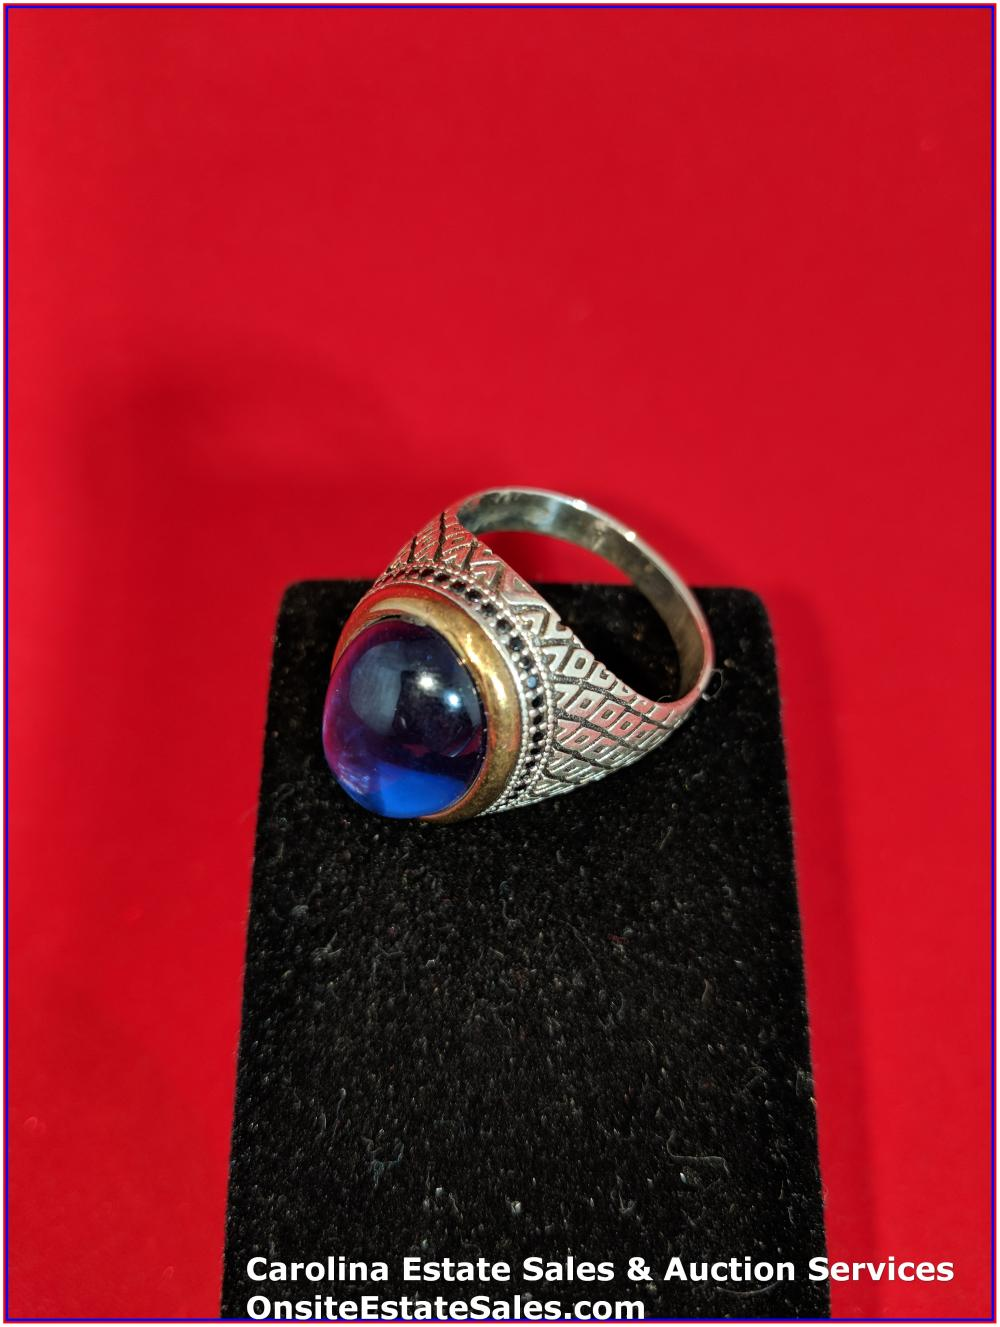 925 Gem Ring Sterling 14 Grams Total Weight Includes Stone